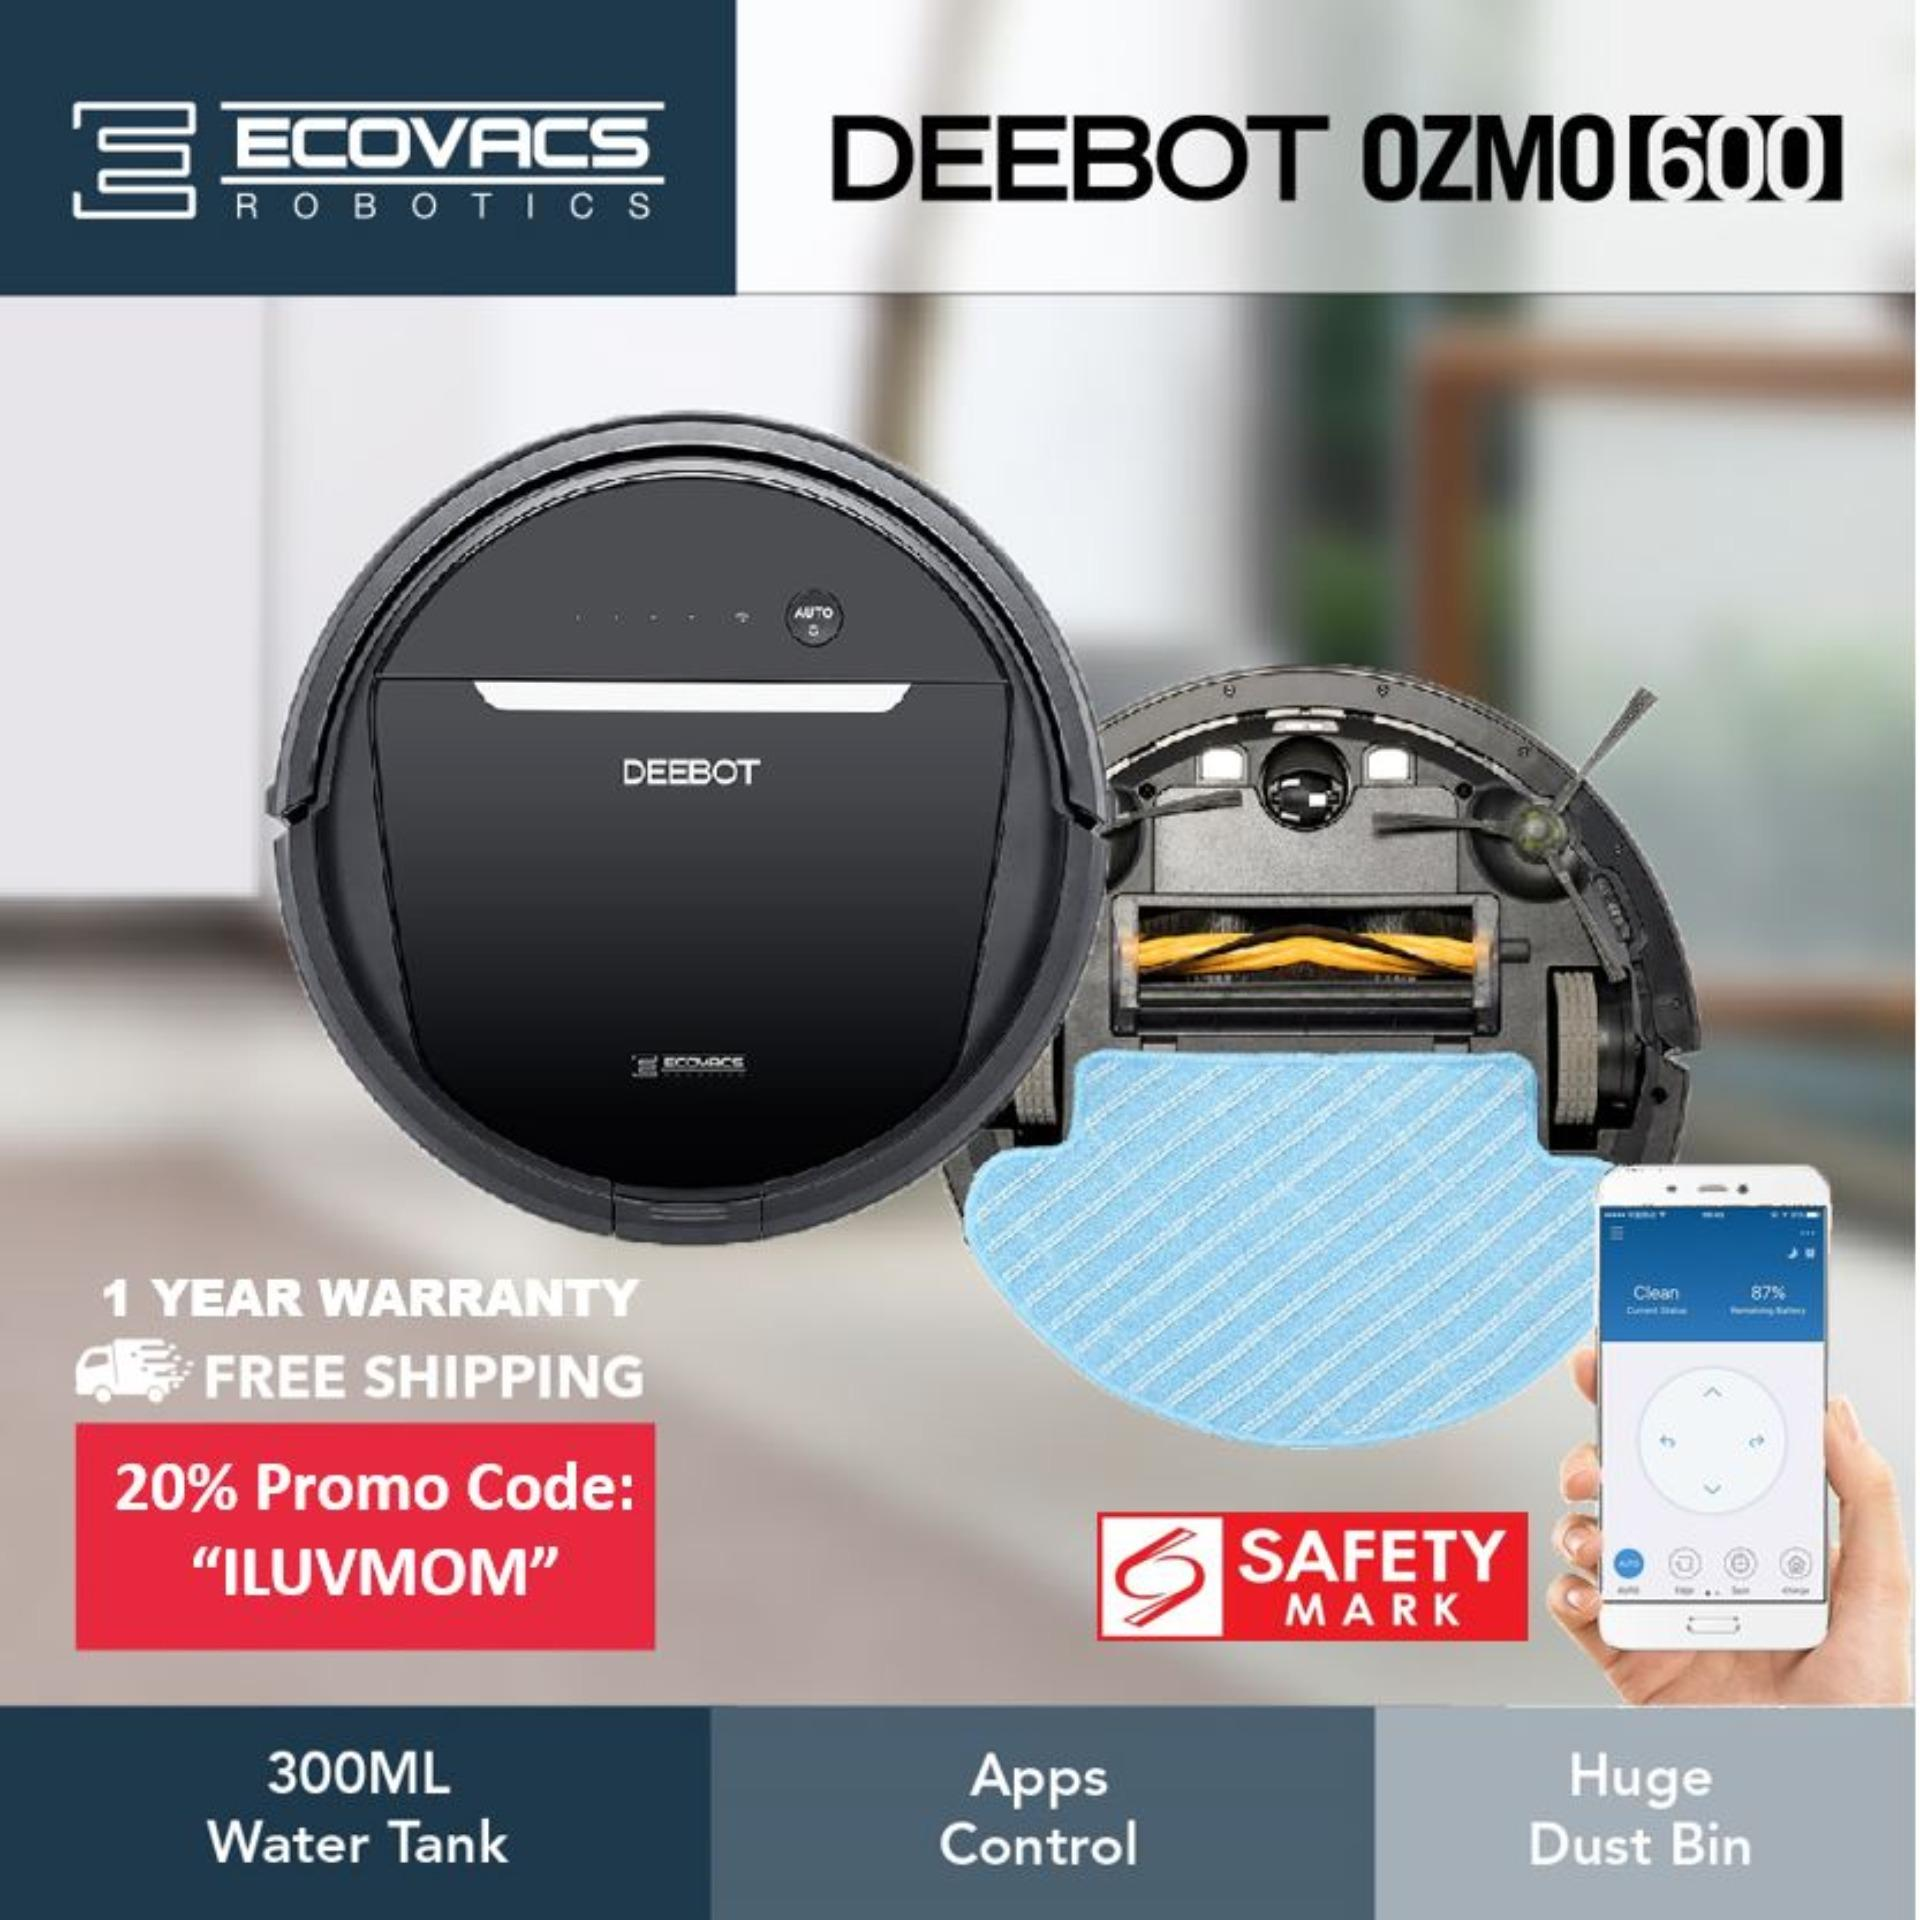 Ecovacs Deebot Ozmo 600 Robot Vacuum Cleaner [with 300ml Water Tank] By Ecovacs Singapore Official Store.